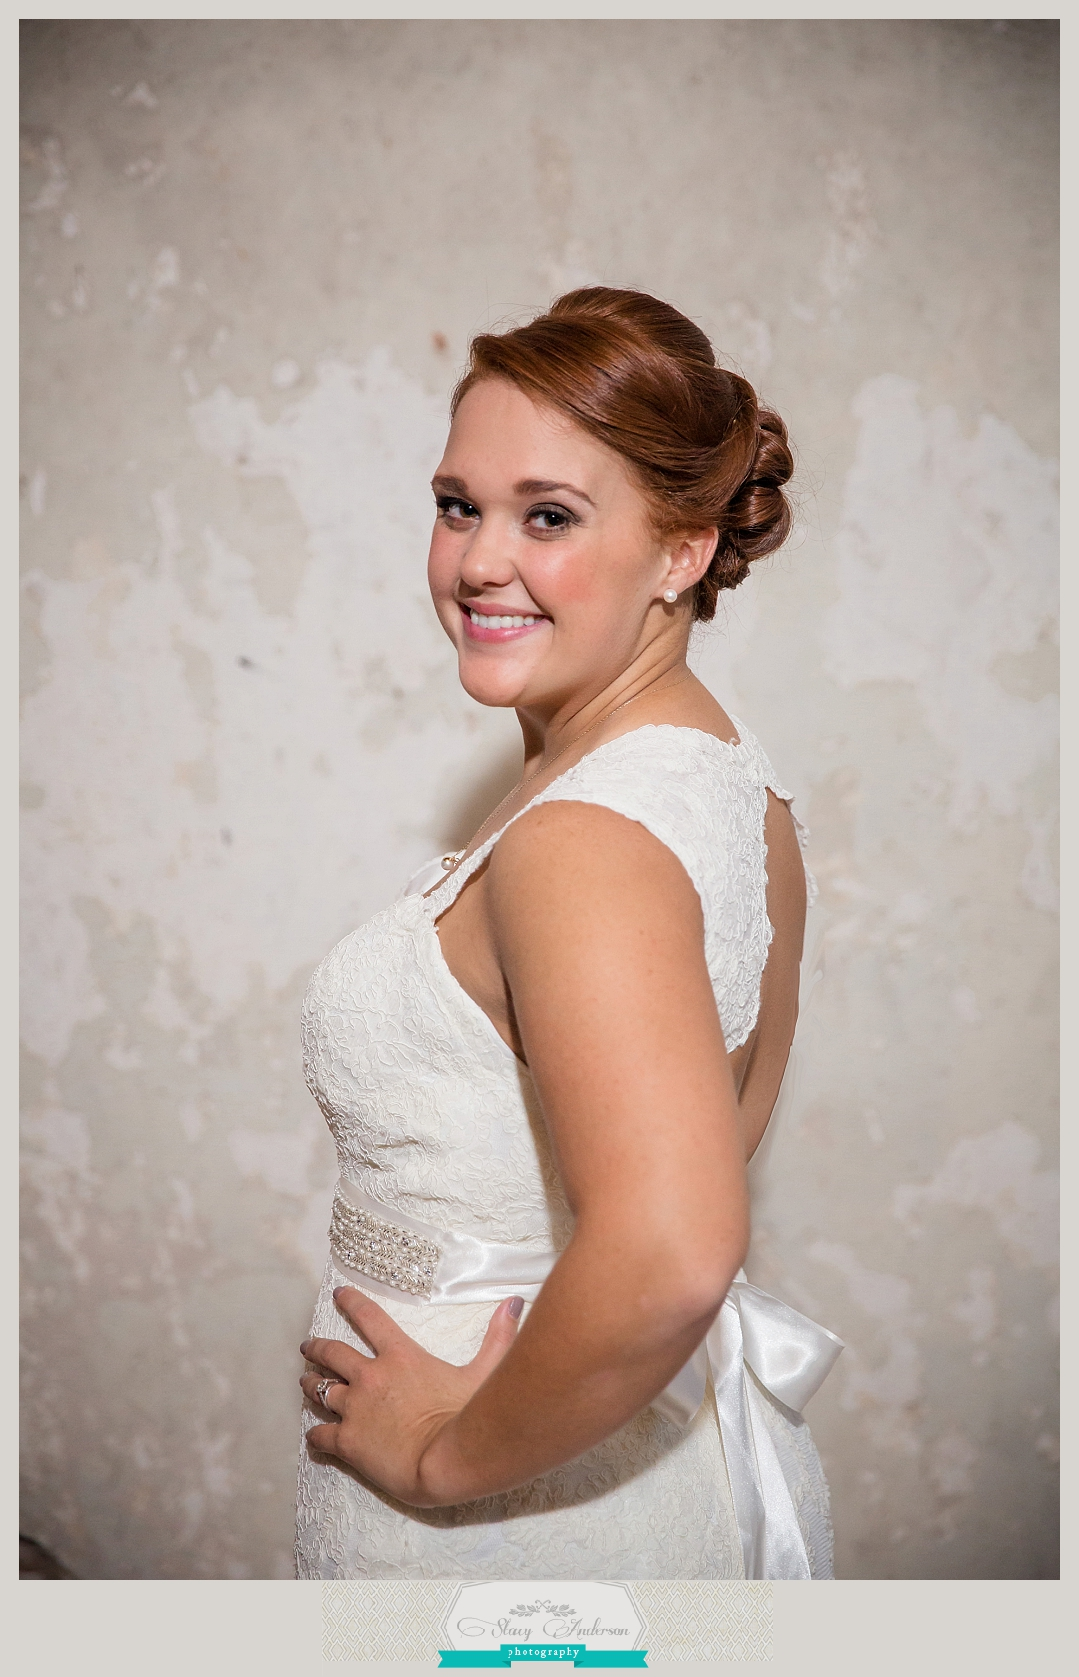 Houston Studio Bridal Wedding Photographer (7)